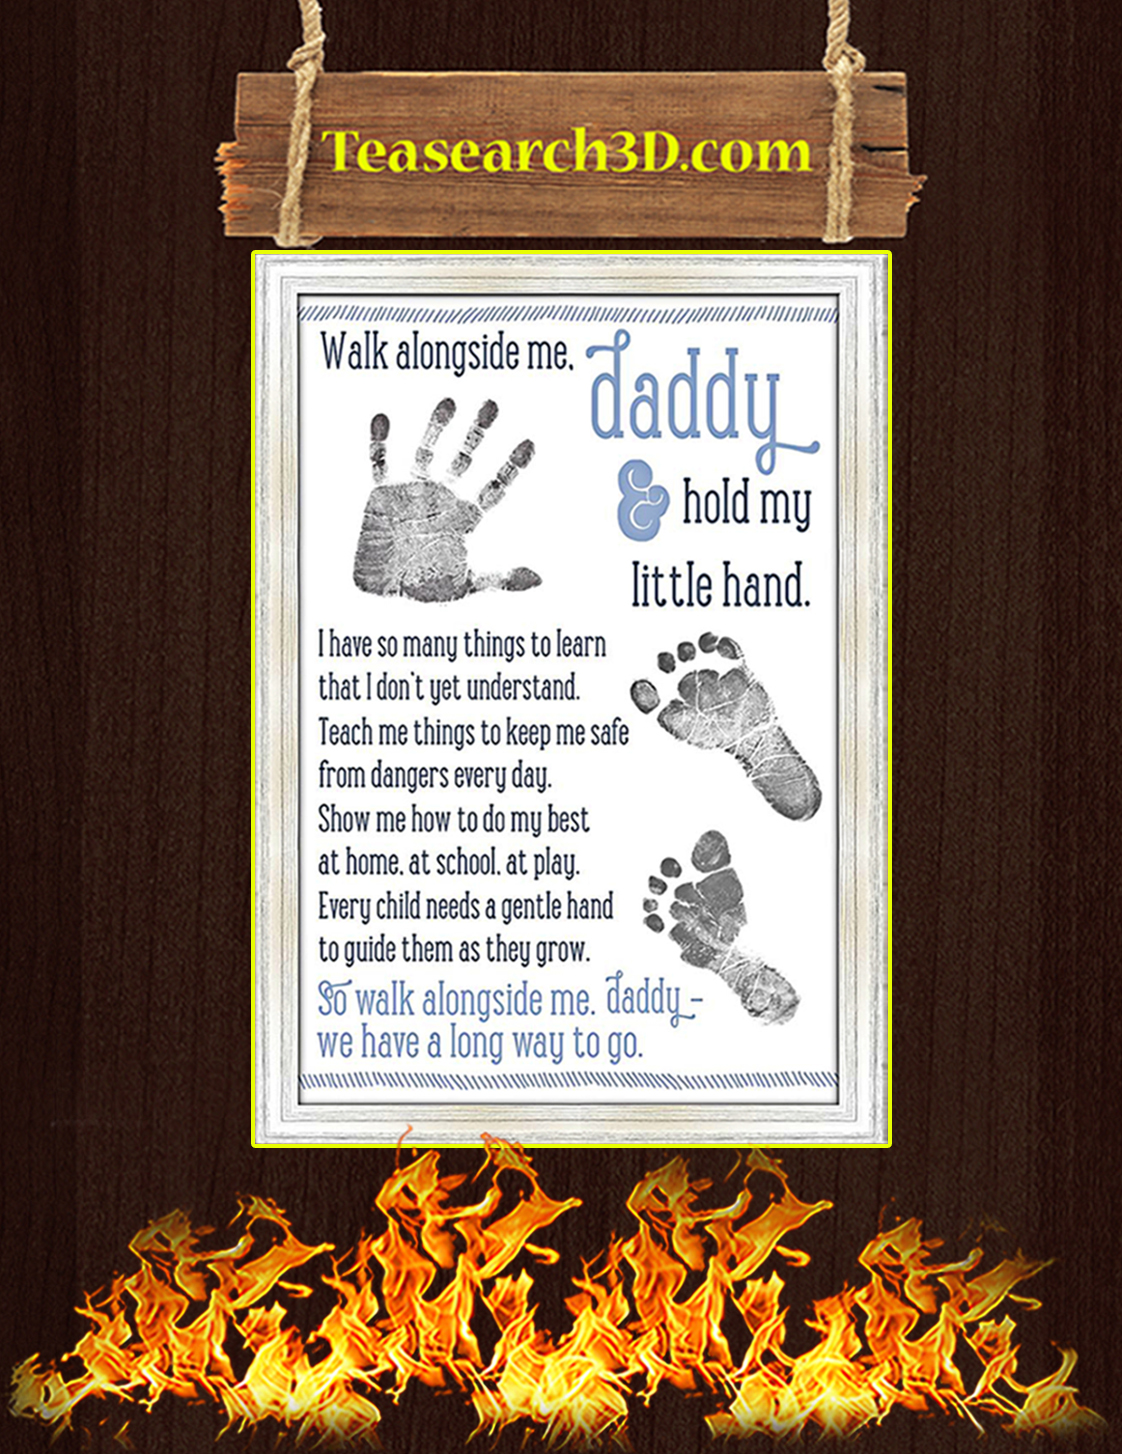 Walk alongside me daddy hold my little hand poster A3